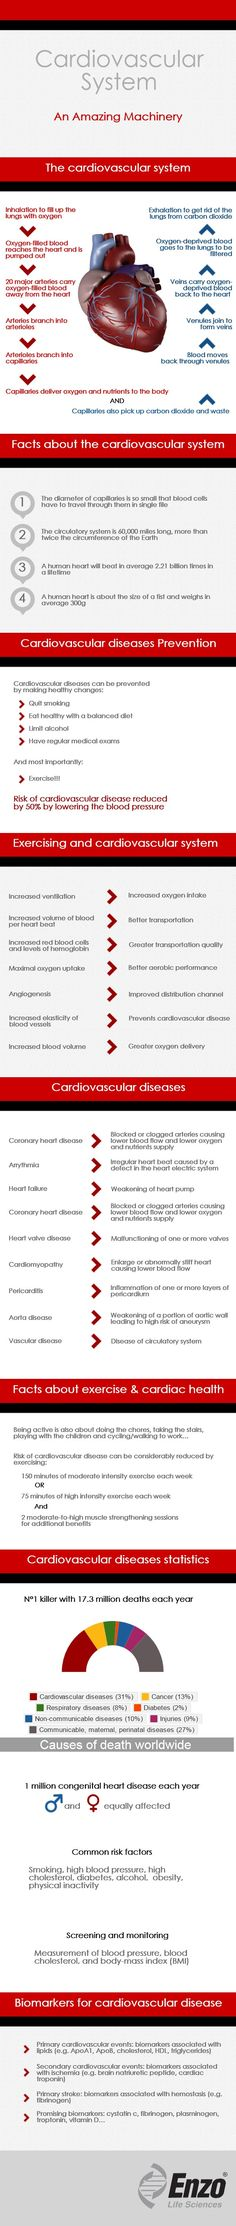 Cardiovascular System An Amazing Machinery - Enzo Life Sciences